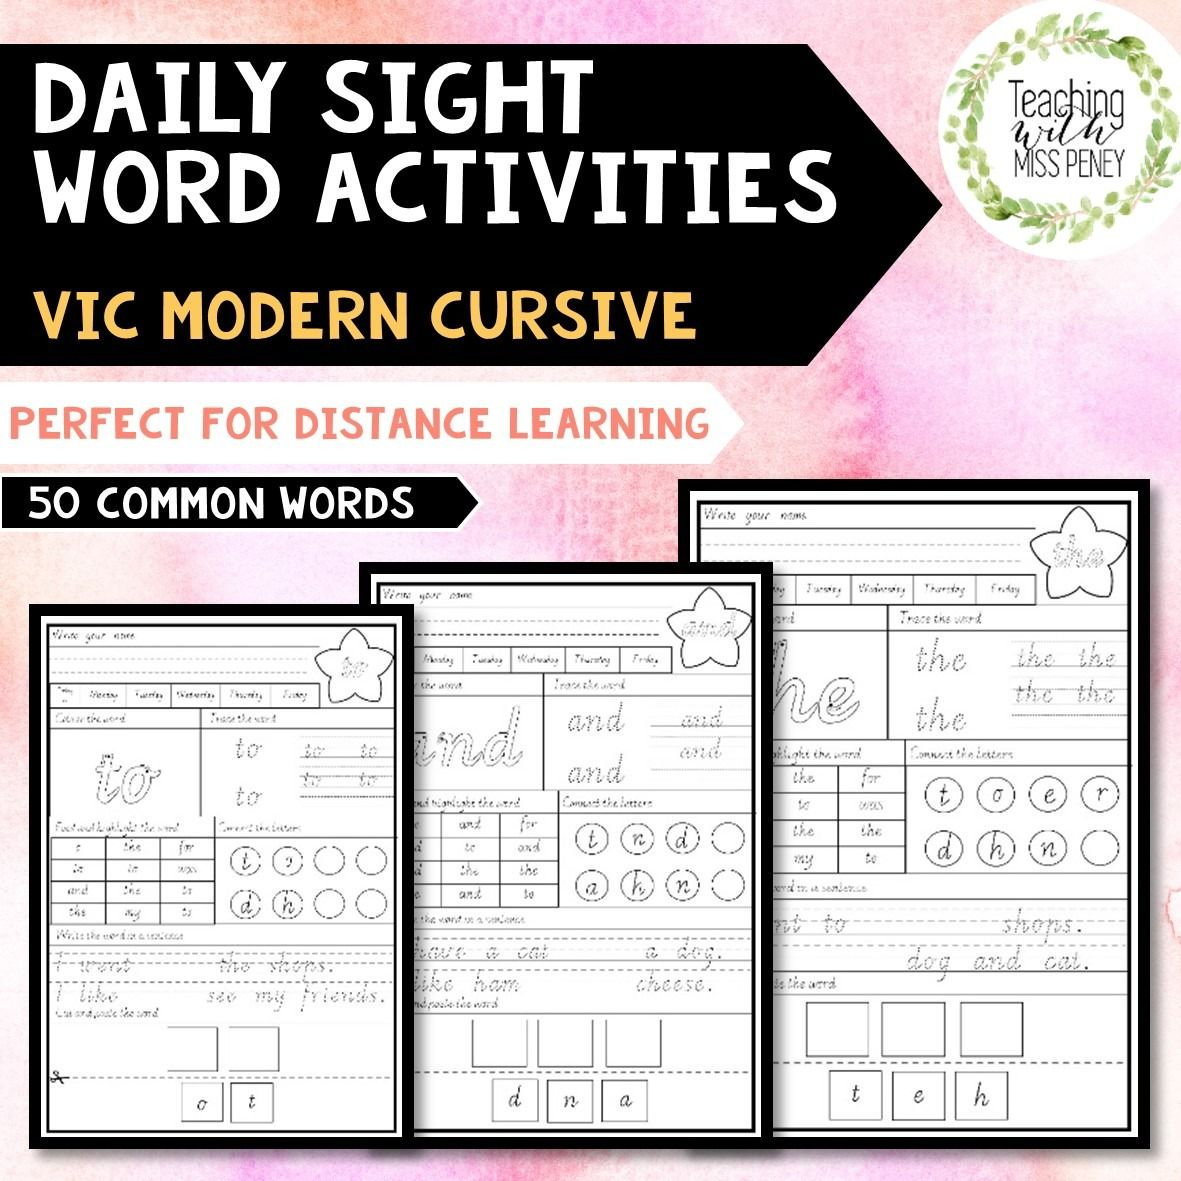 Daily Sight Word Activities Vic Modern Cursive In